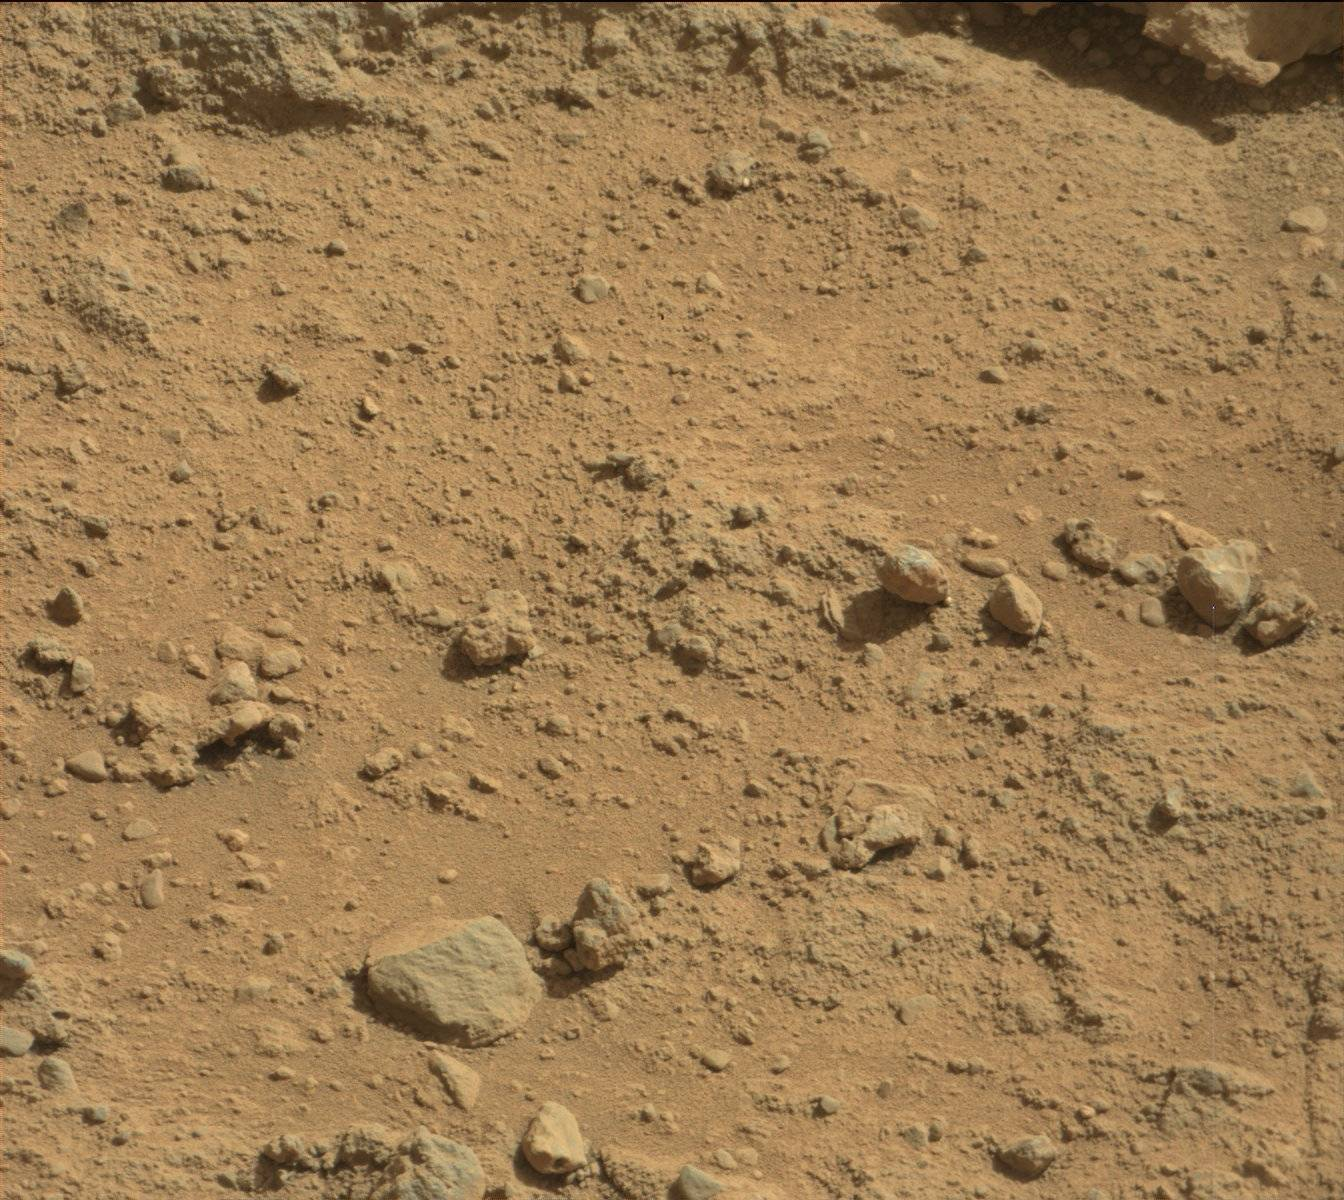 Mars Rover Anomalies - Pics about space